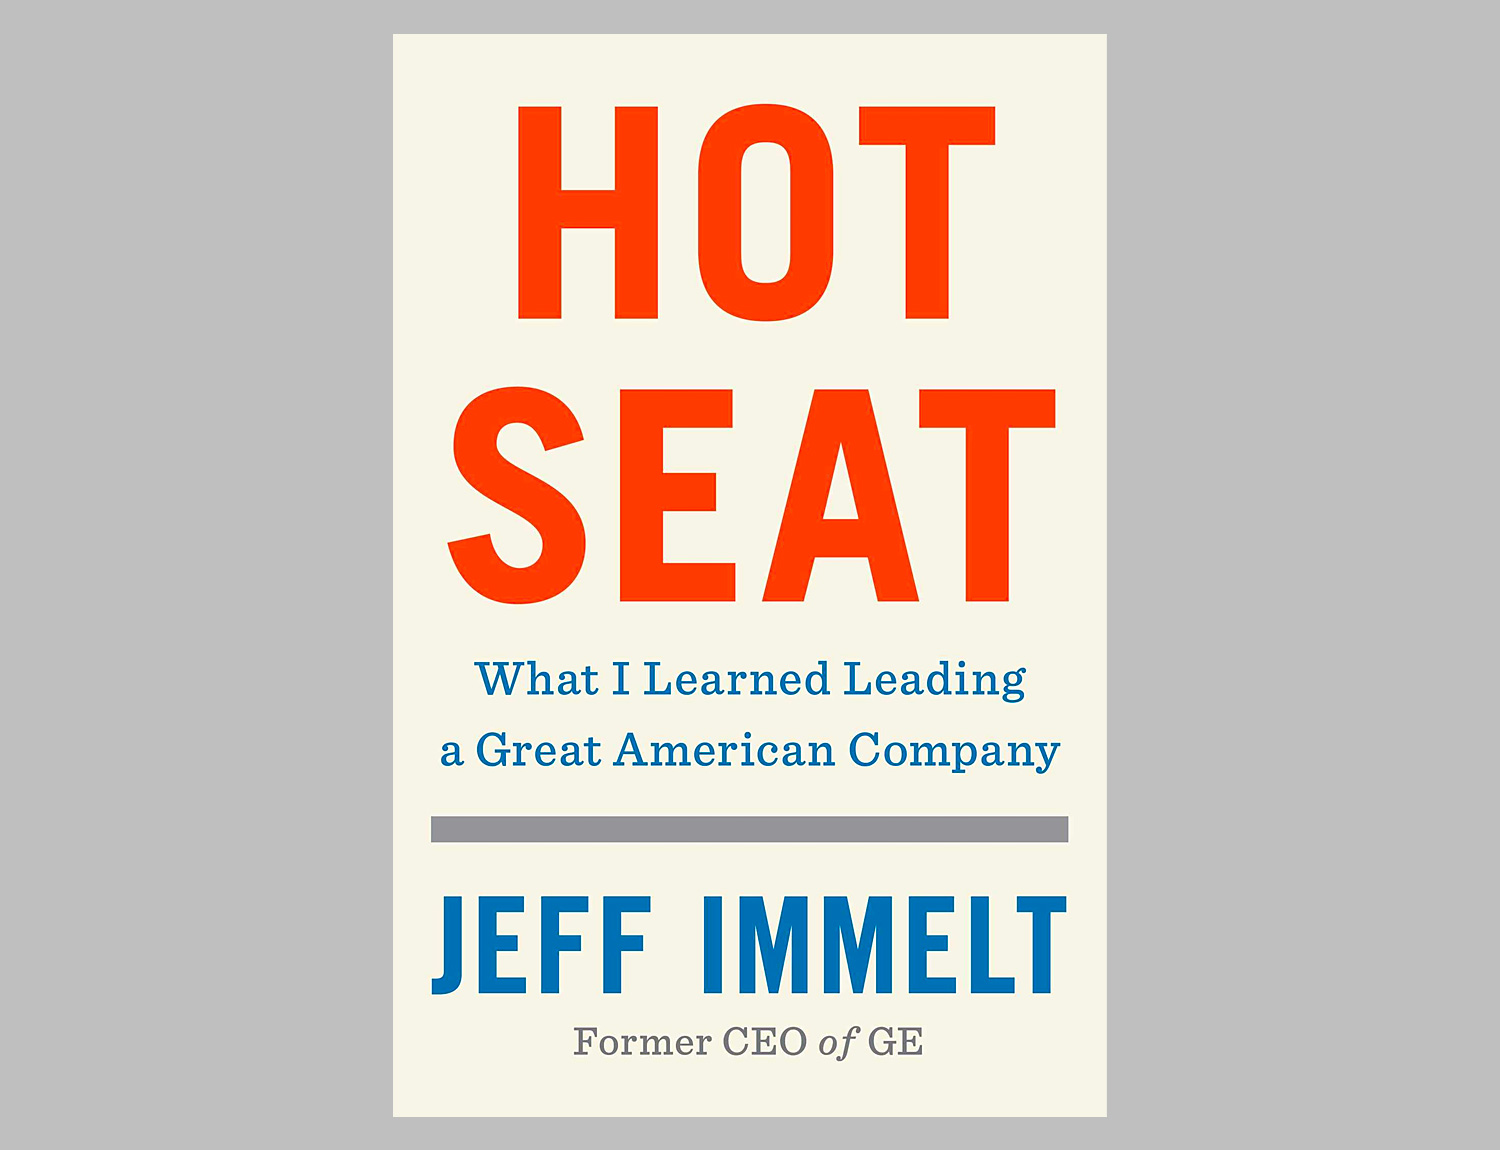 Hot Seat: What I Learned Leading a Great American Company at werd.com